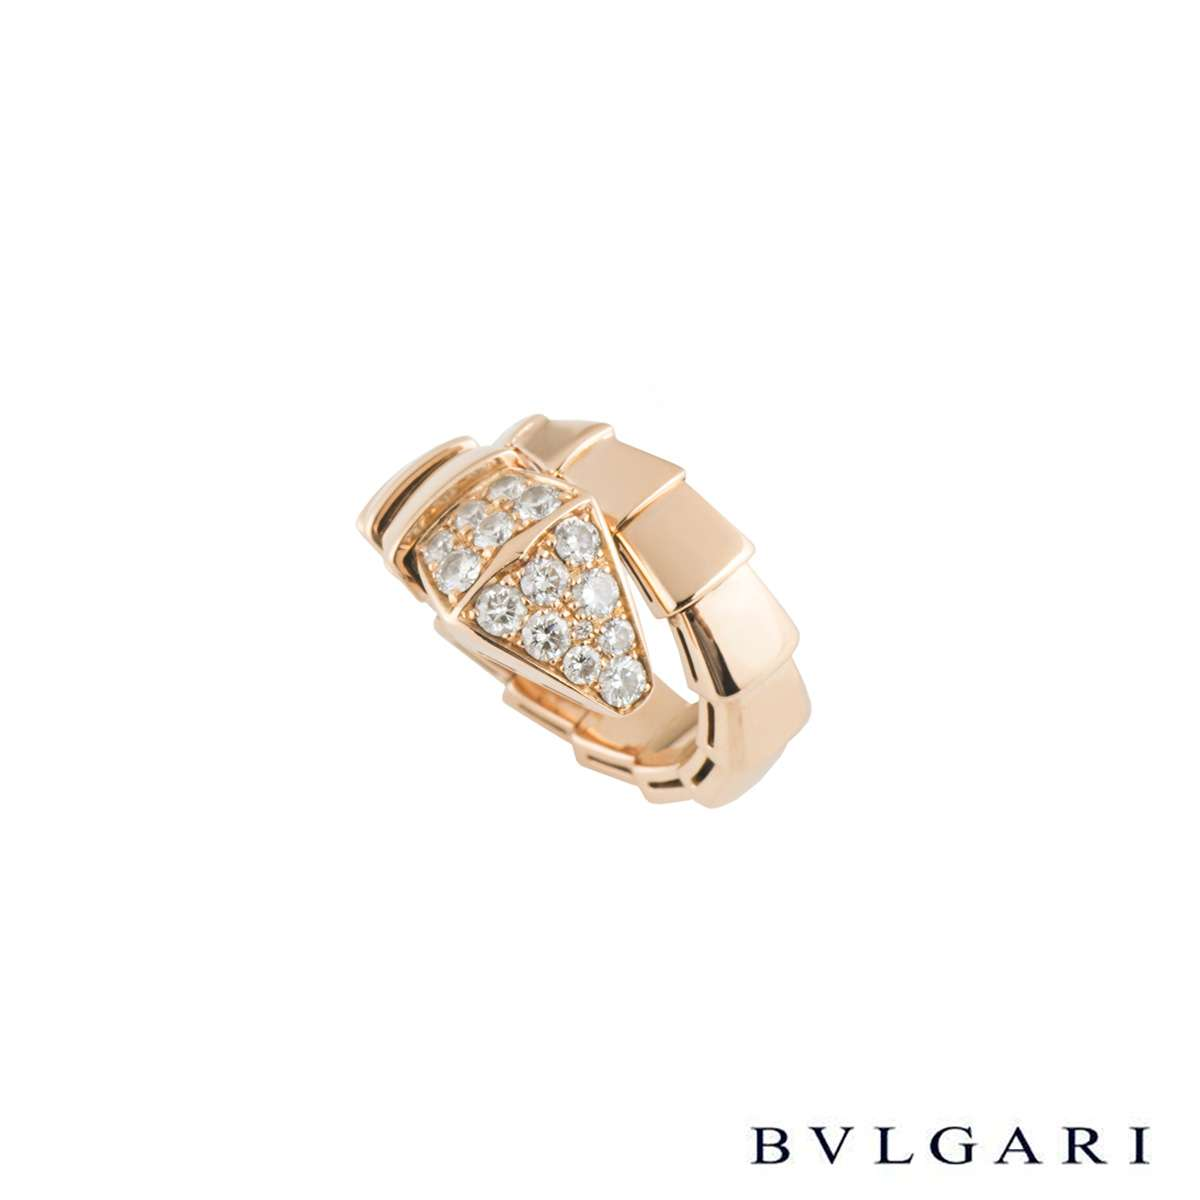 Bvlgari Serpenti Diamond Ring